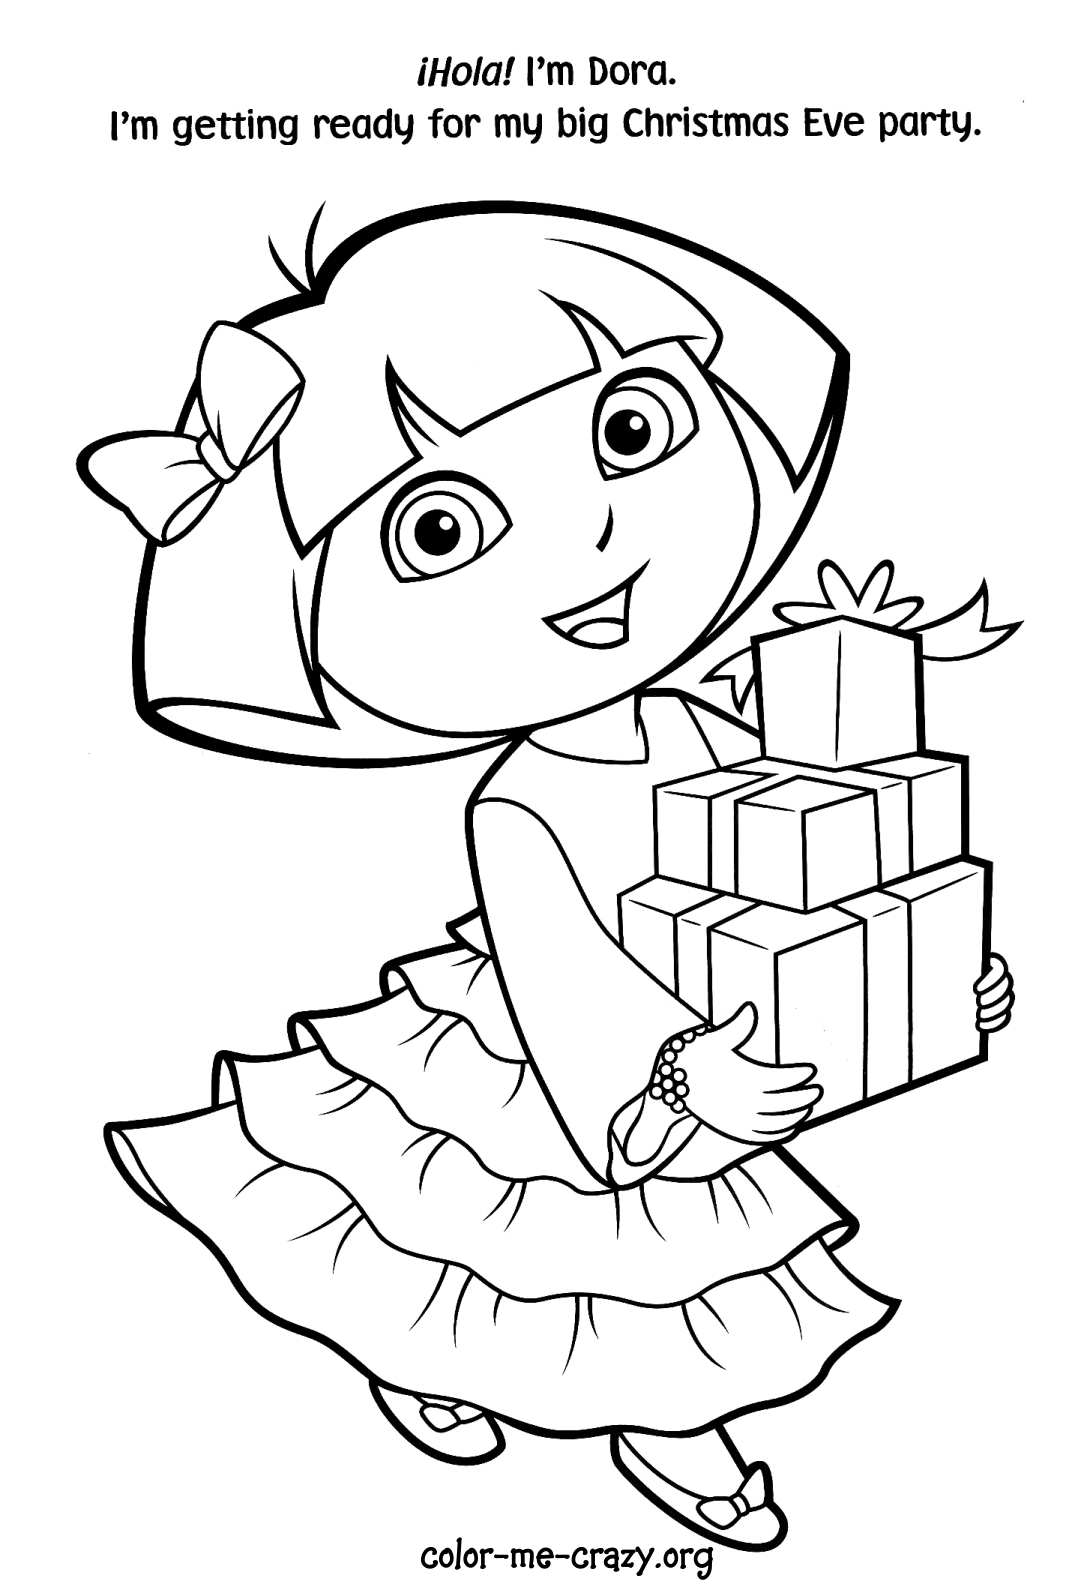 for Dora printable coloring pages